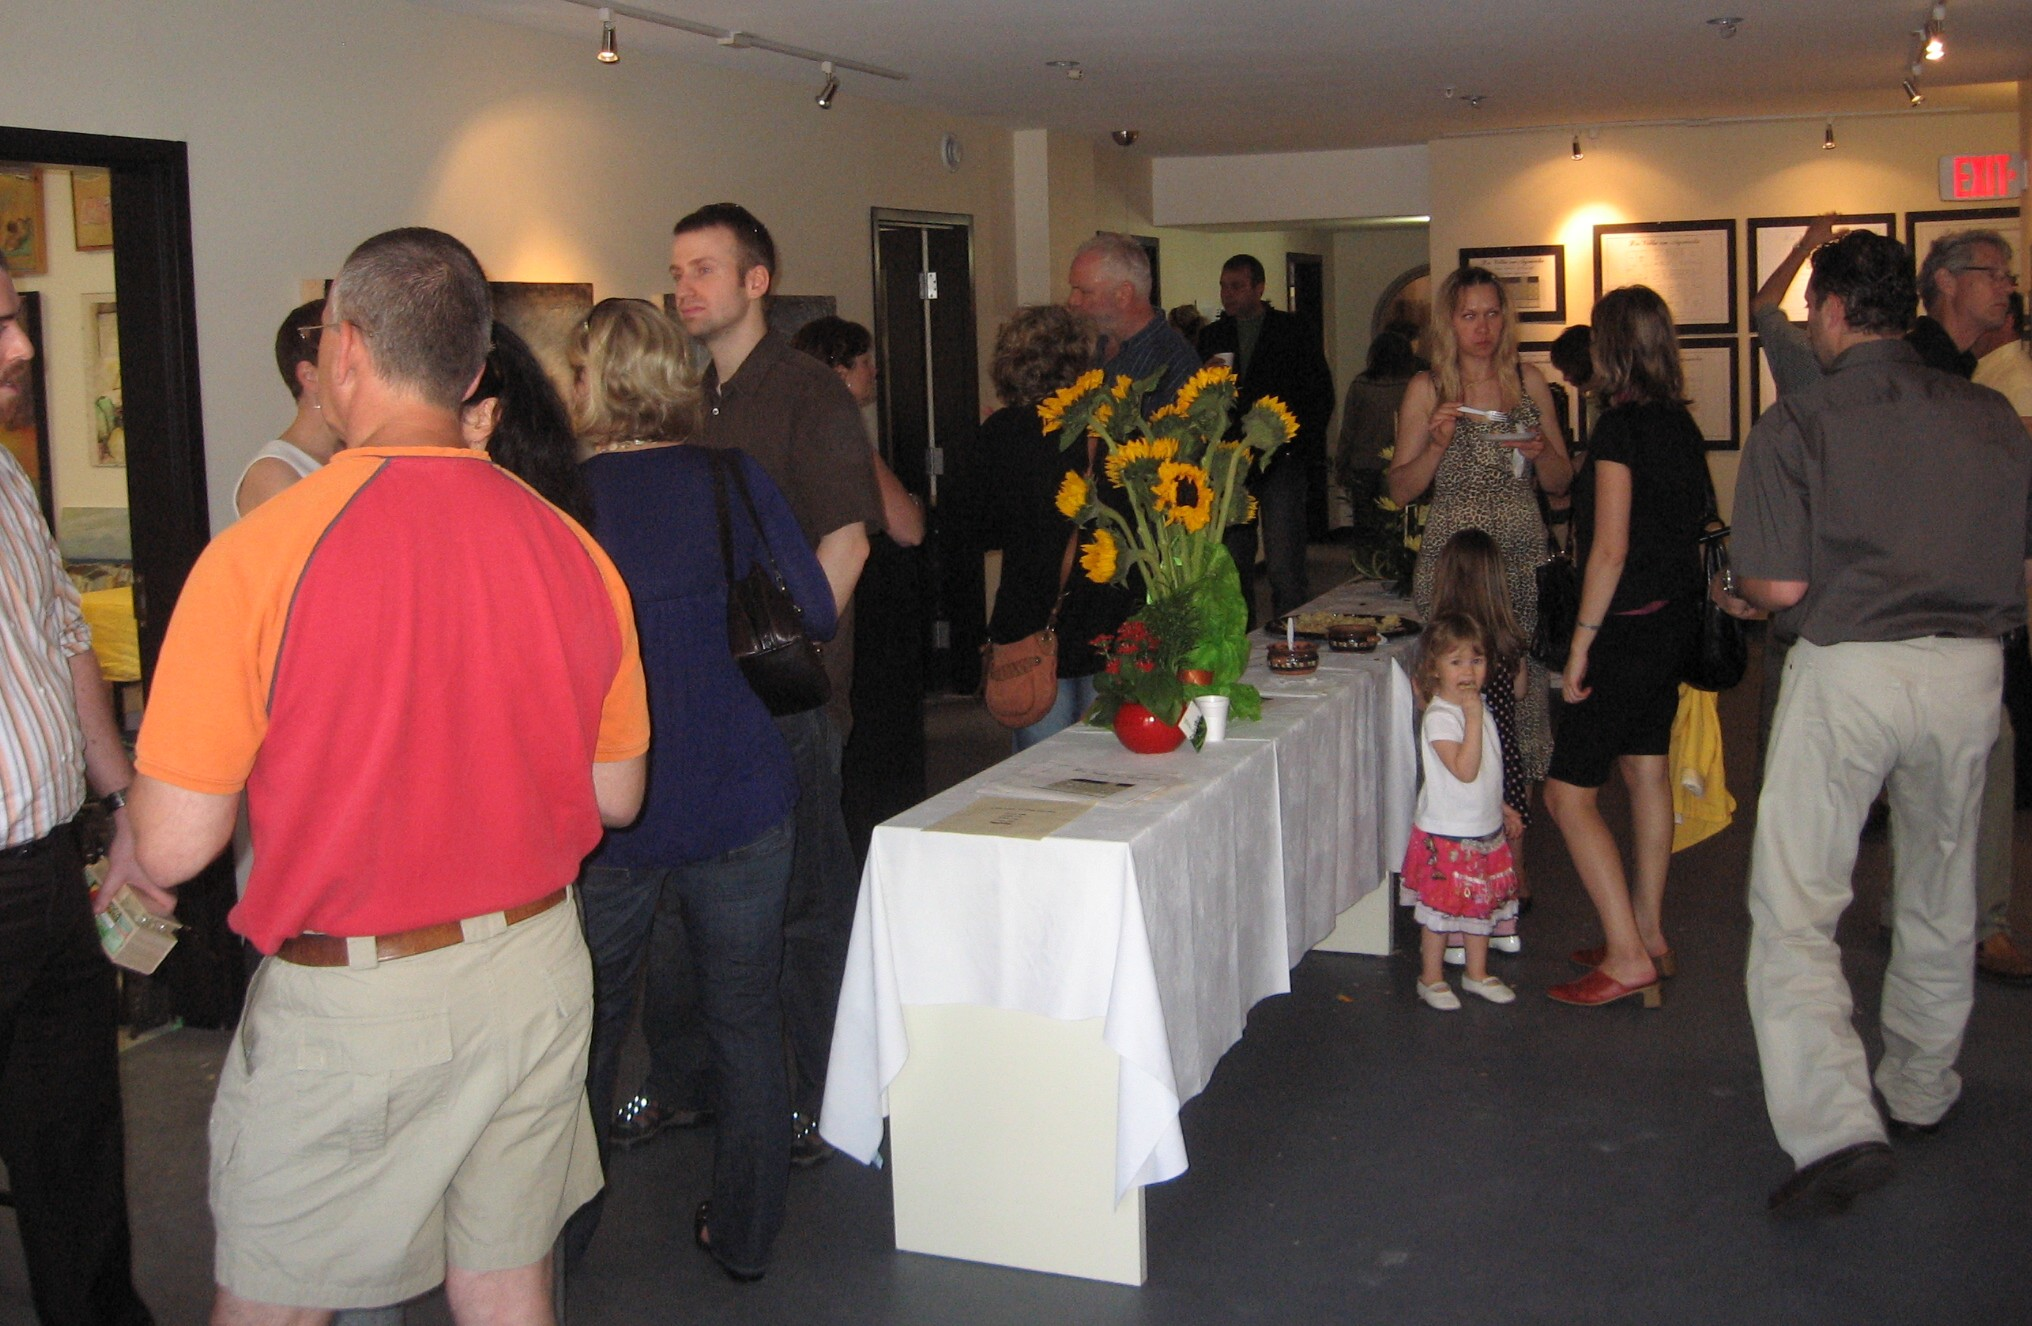 Guests mingle among the art studios and galleries.